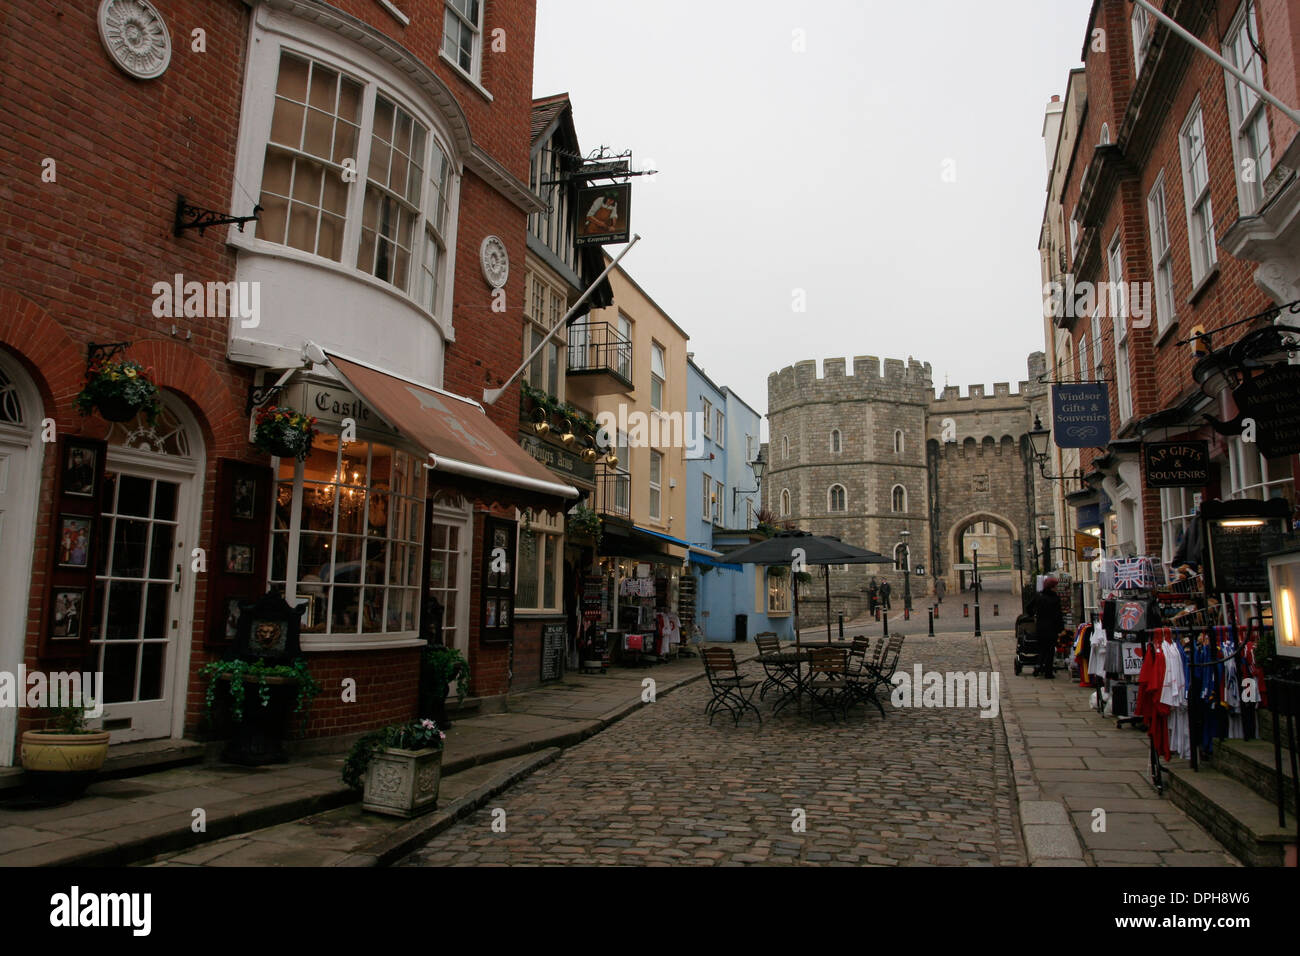 Street with shops leading to Windsor castle - Stock Image